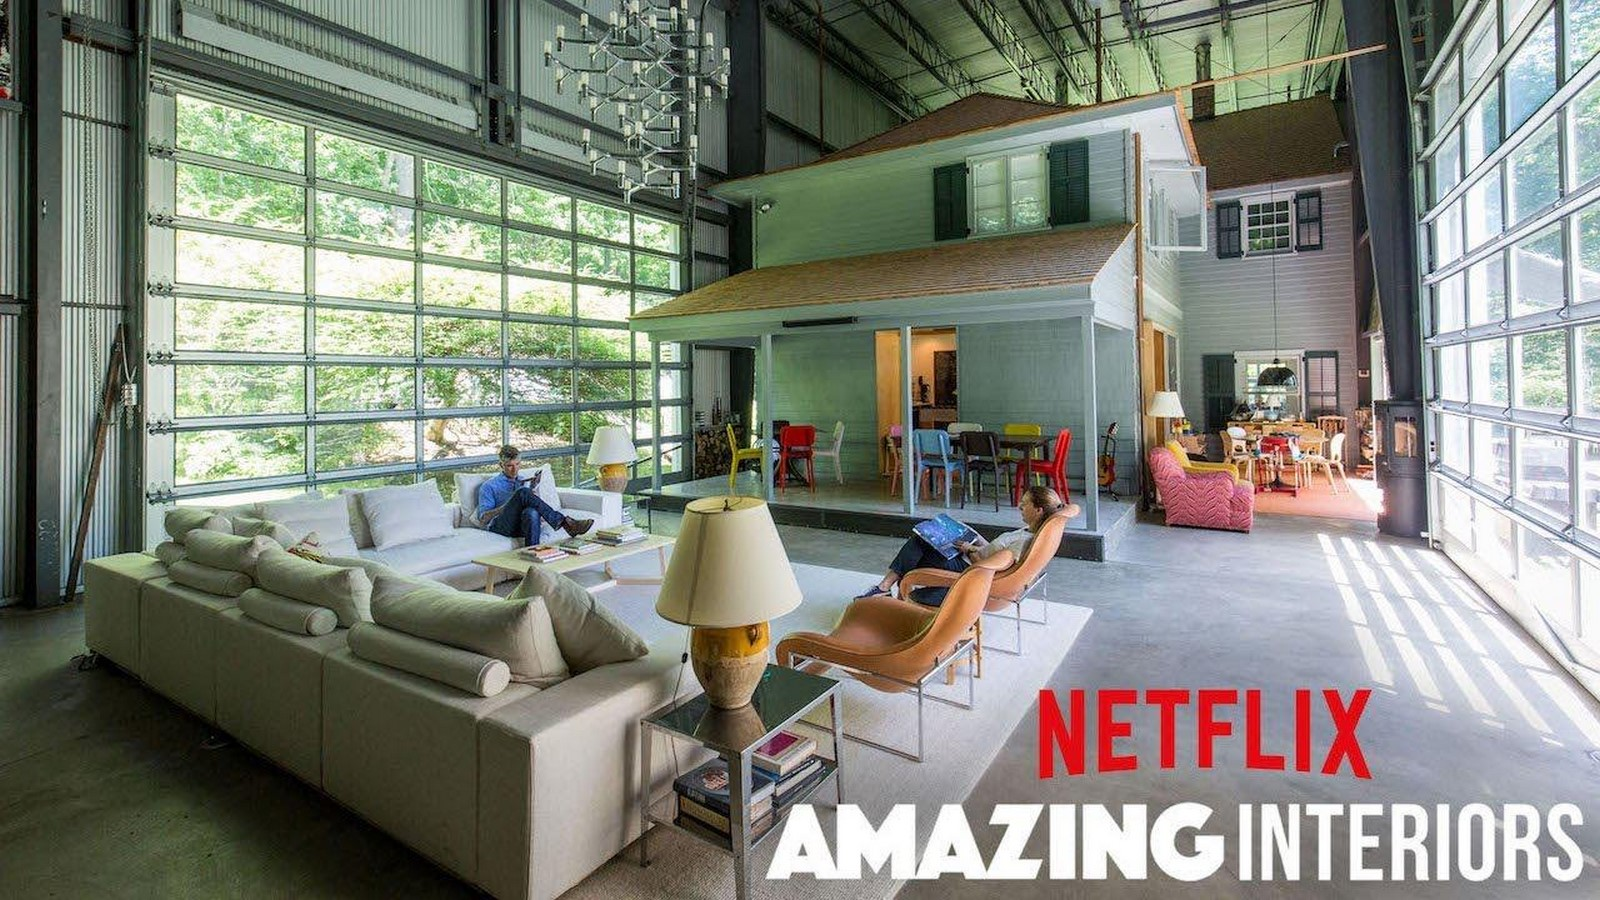 10 Architectural/Design shows on Netflix everyone should watch - Sheet6